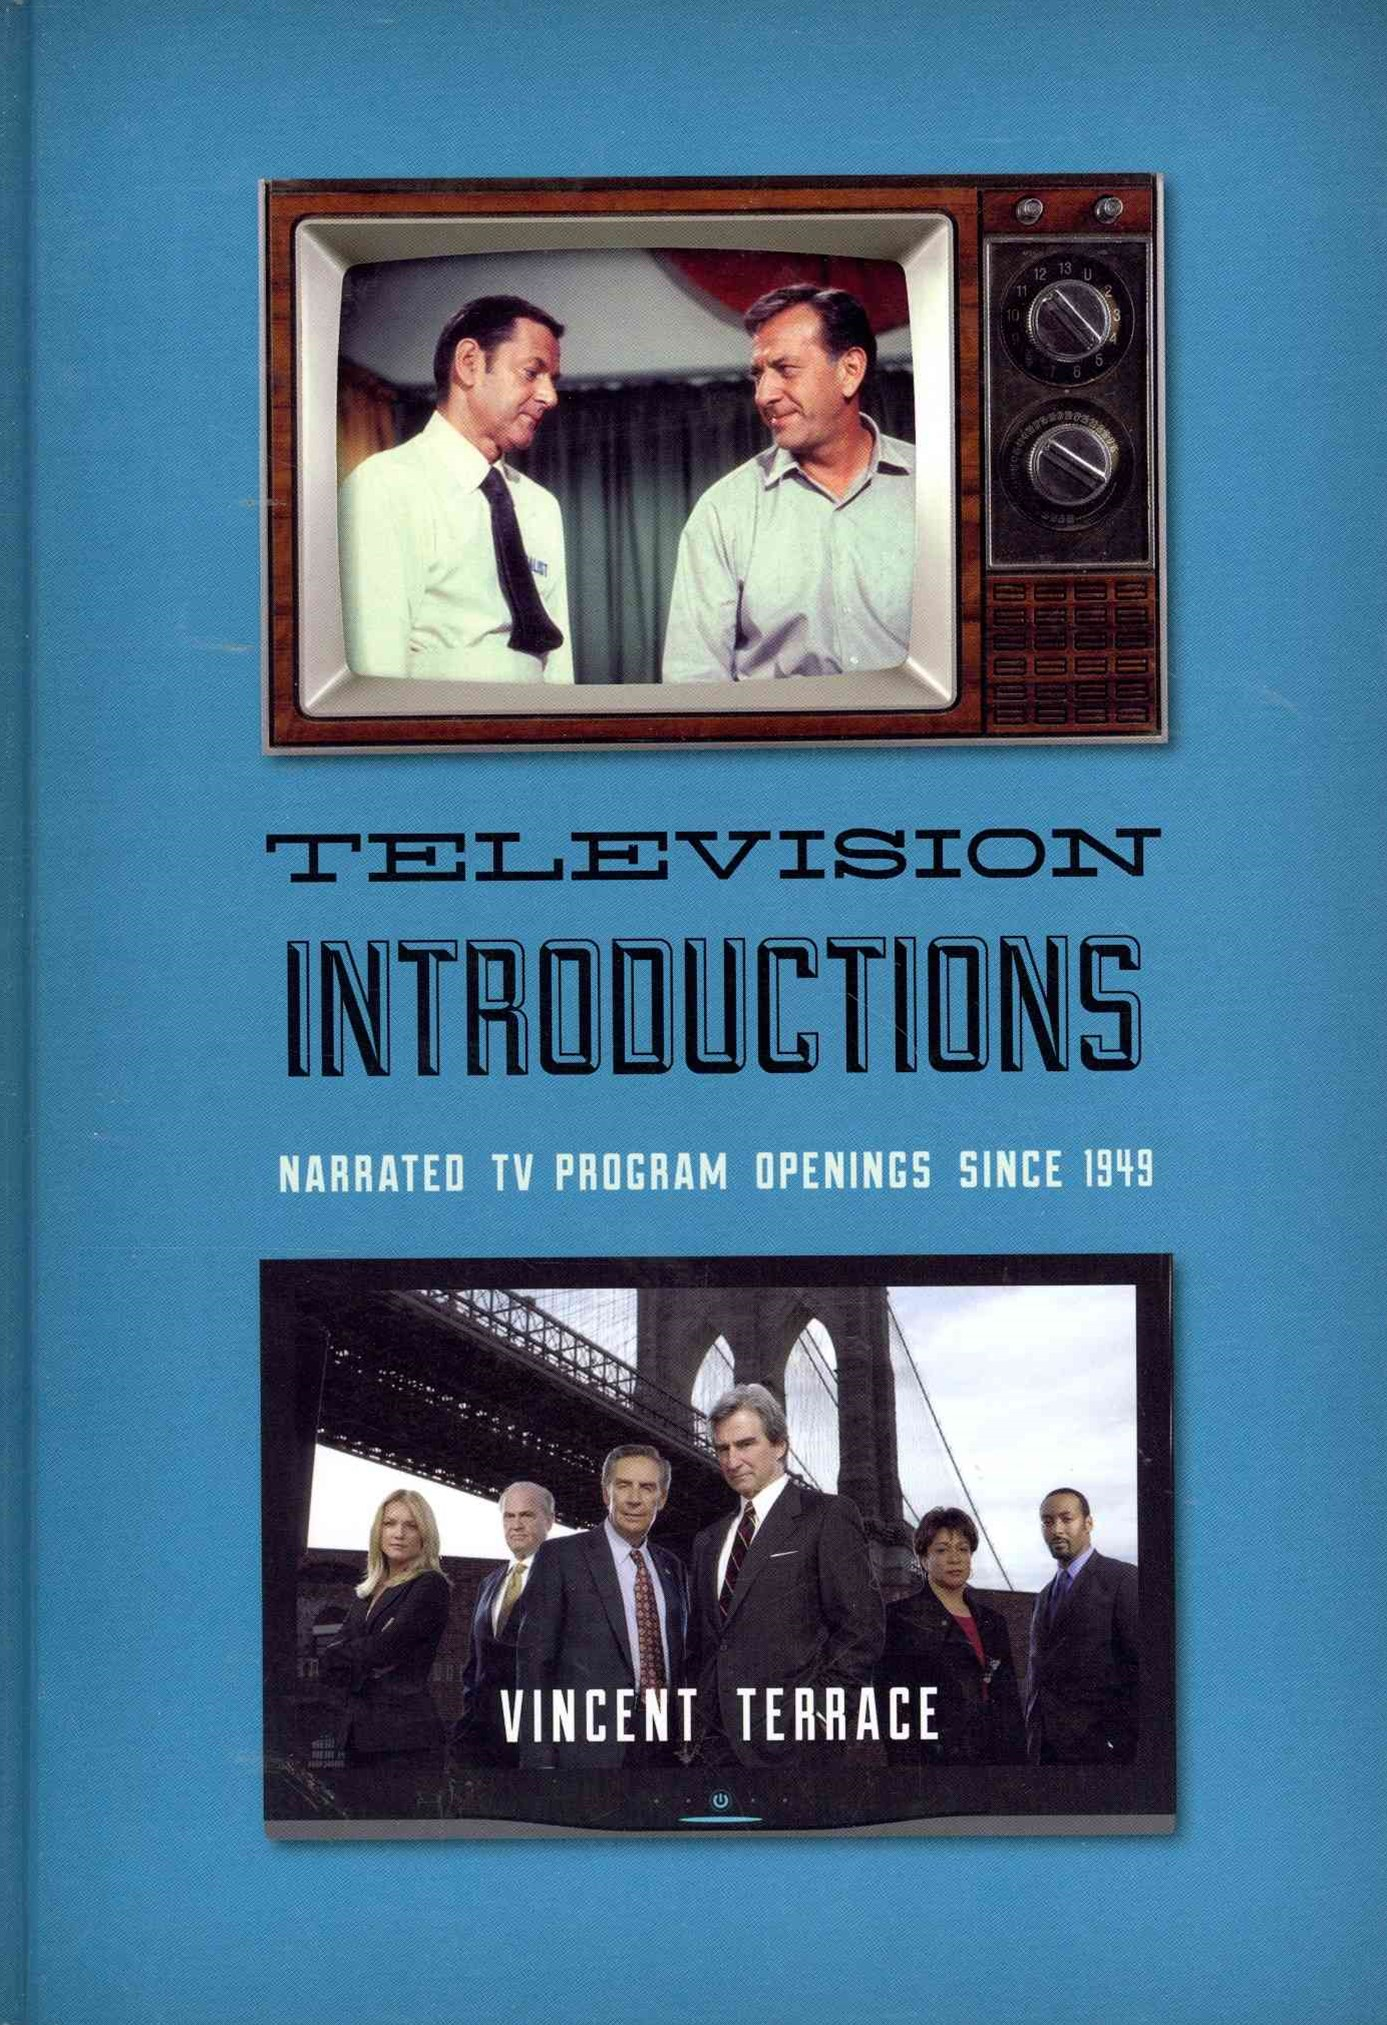 Television Introductions